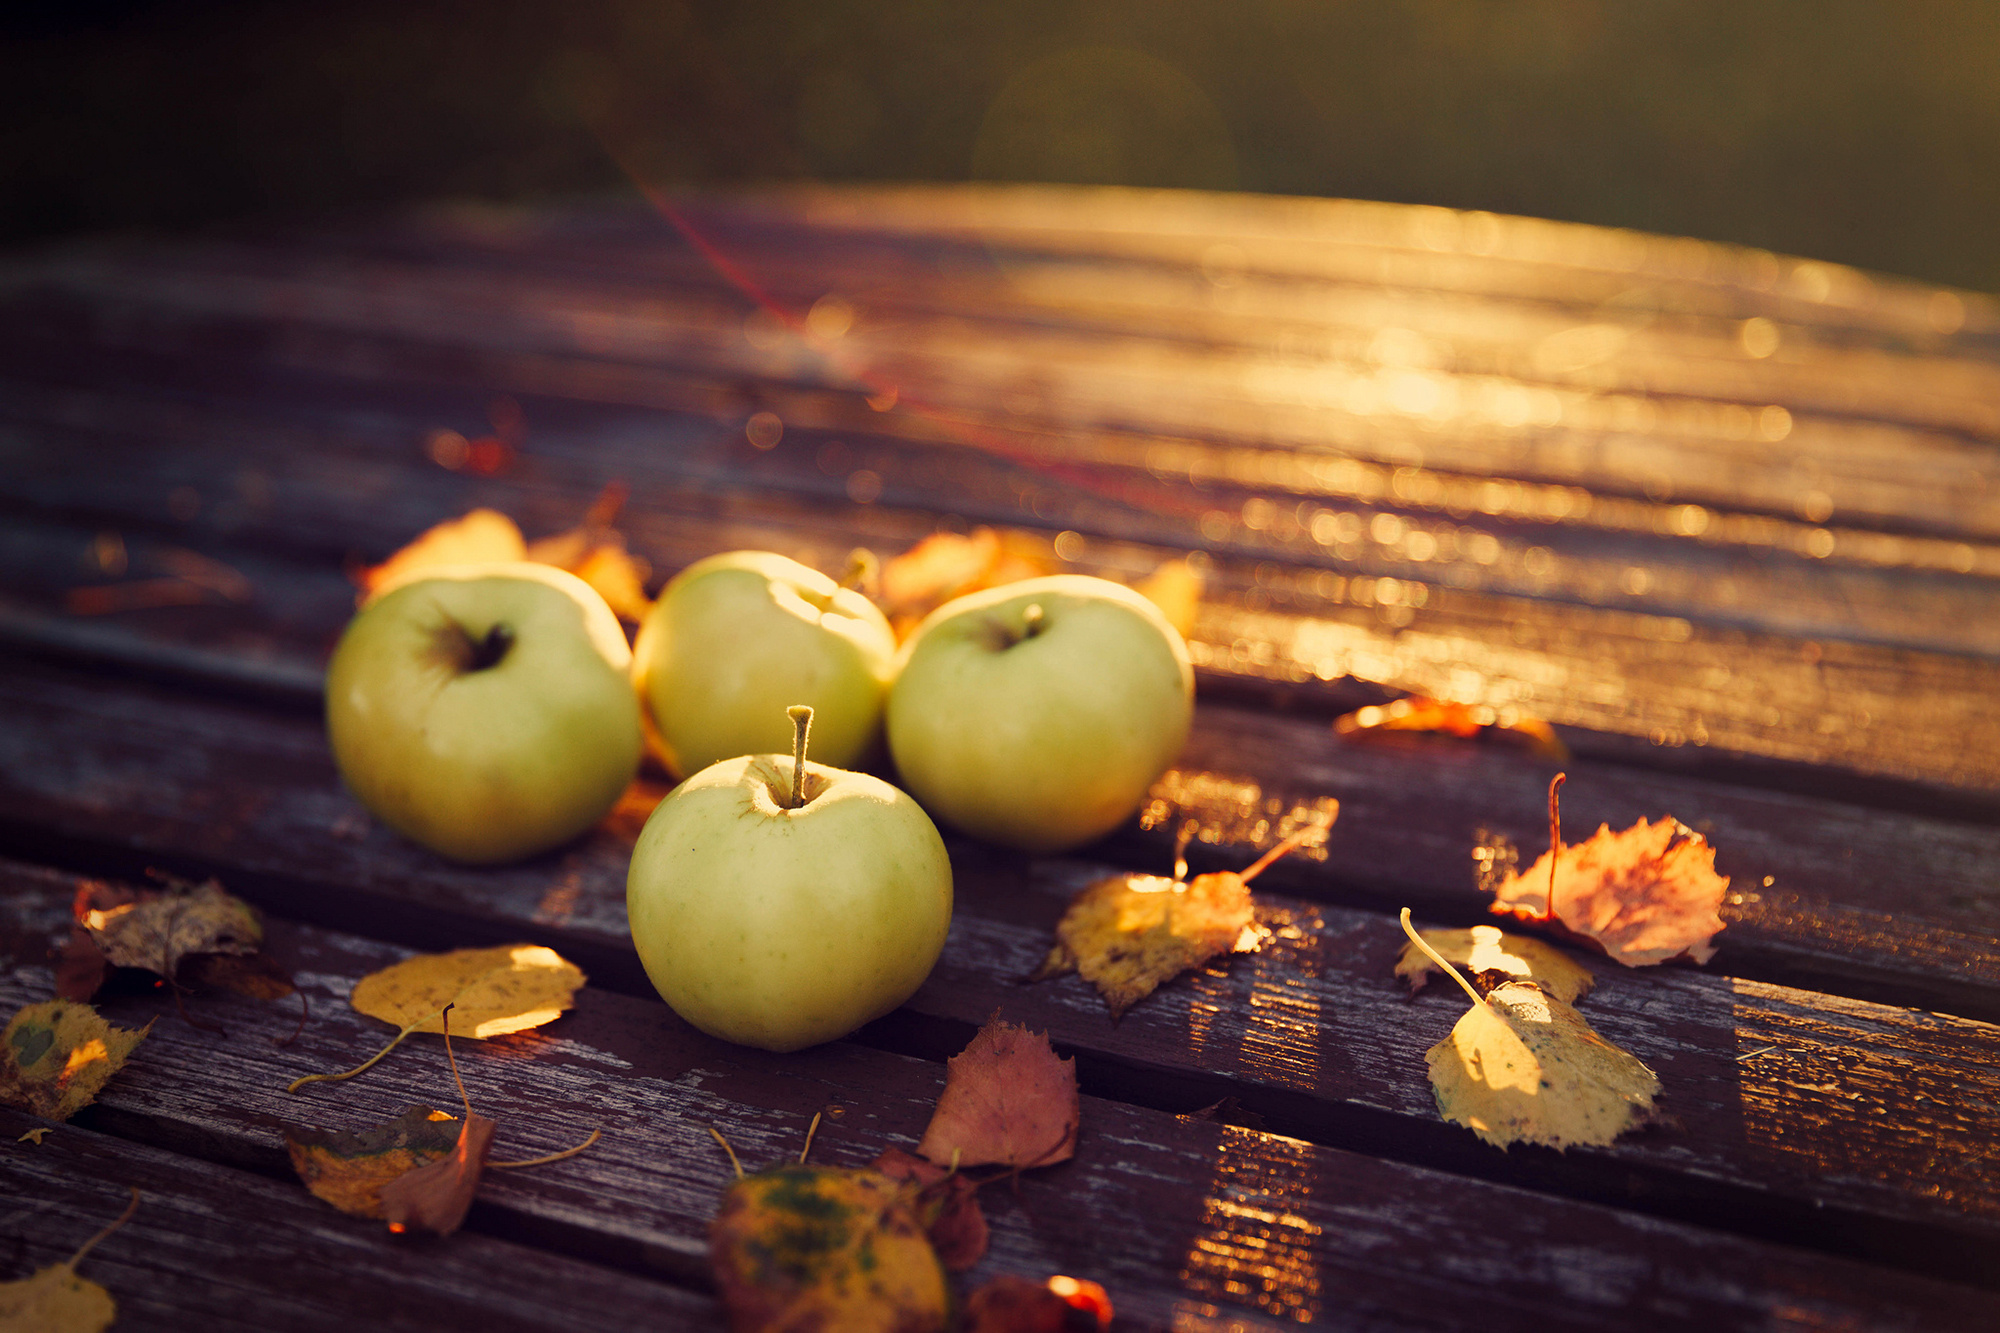 Fall Harvest Wallpaper Downloads 3863 - Amazing Wallpaperz